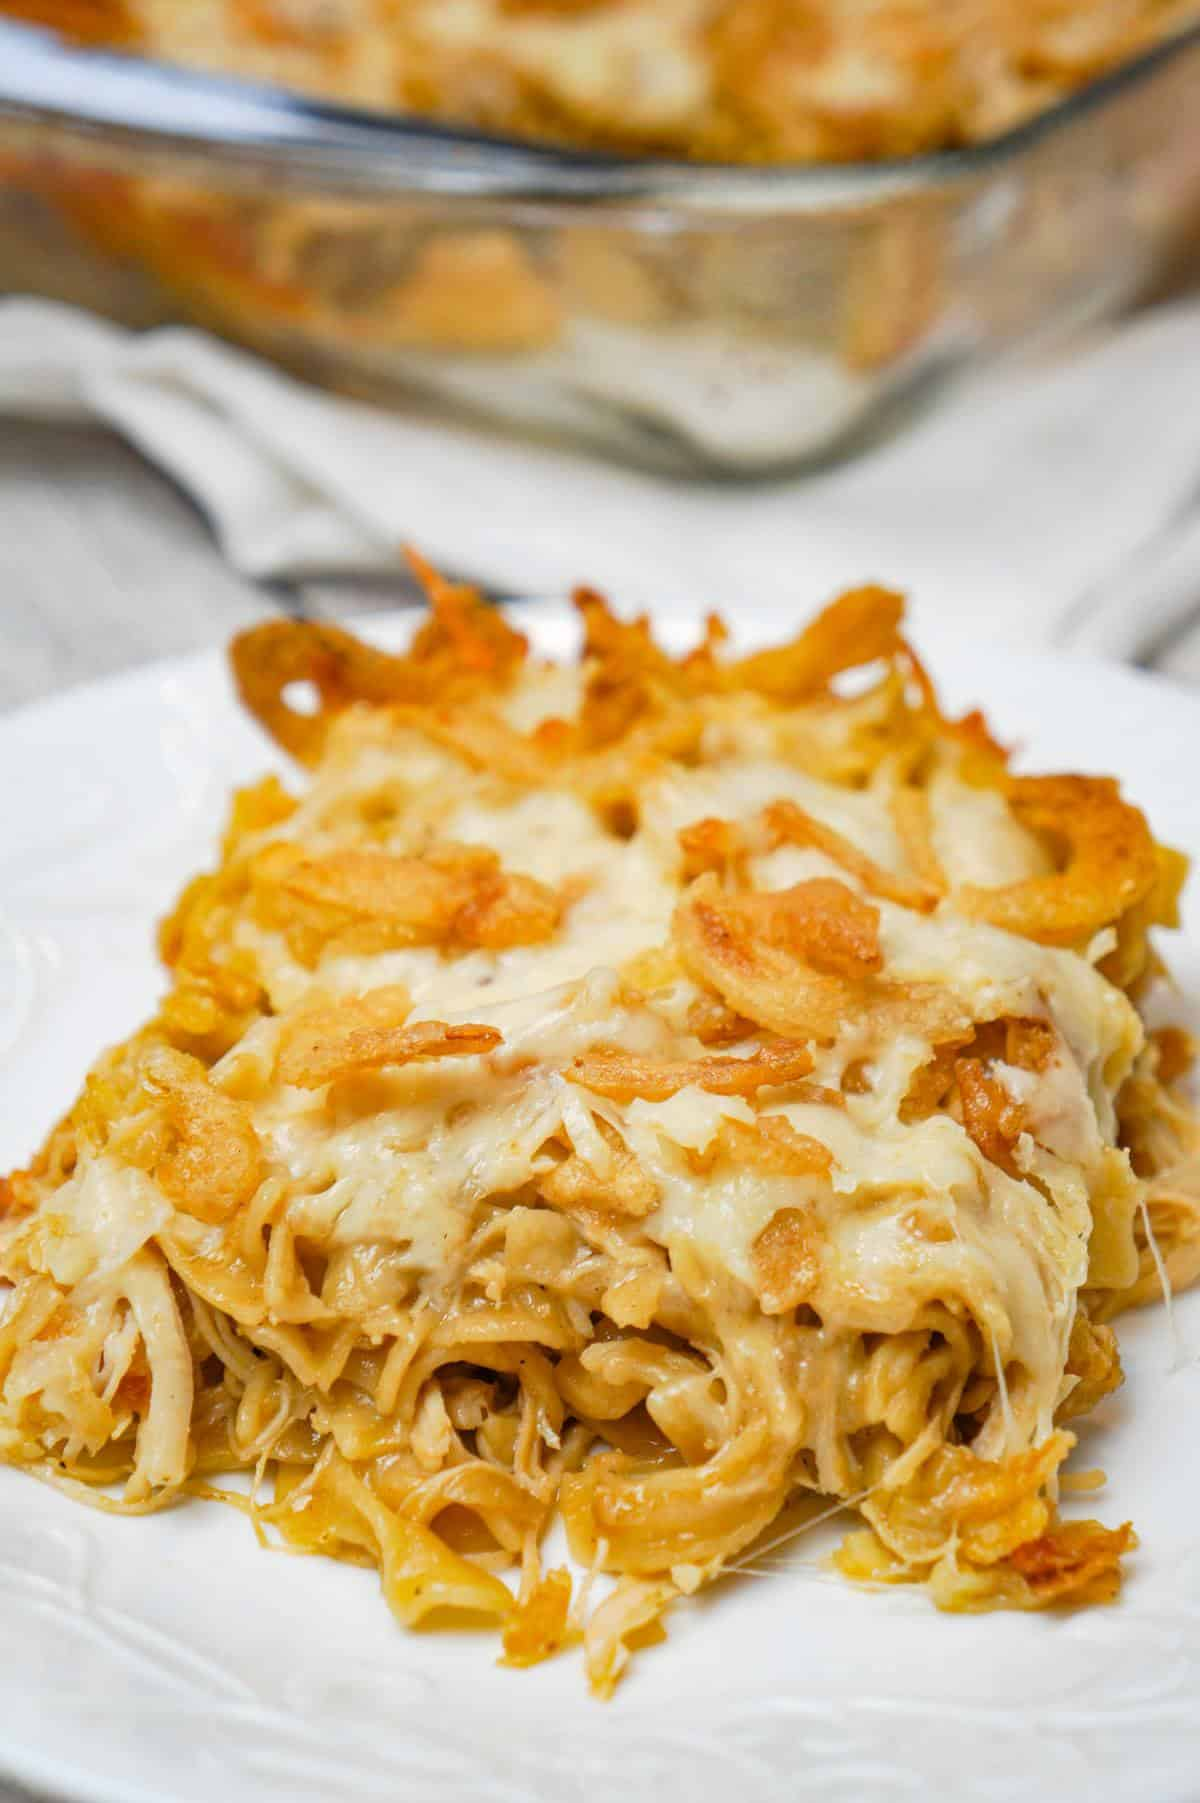 French Onion Chicken Casserole is a hearty casserole recipe loaded with shredded chicken, egg noodles, onion soup mix, cream of chicken soup, mozzarella cheese, parmesan cheese and French's crispy fried onions.